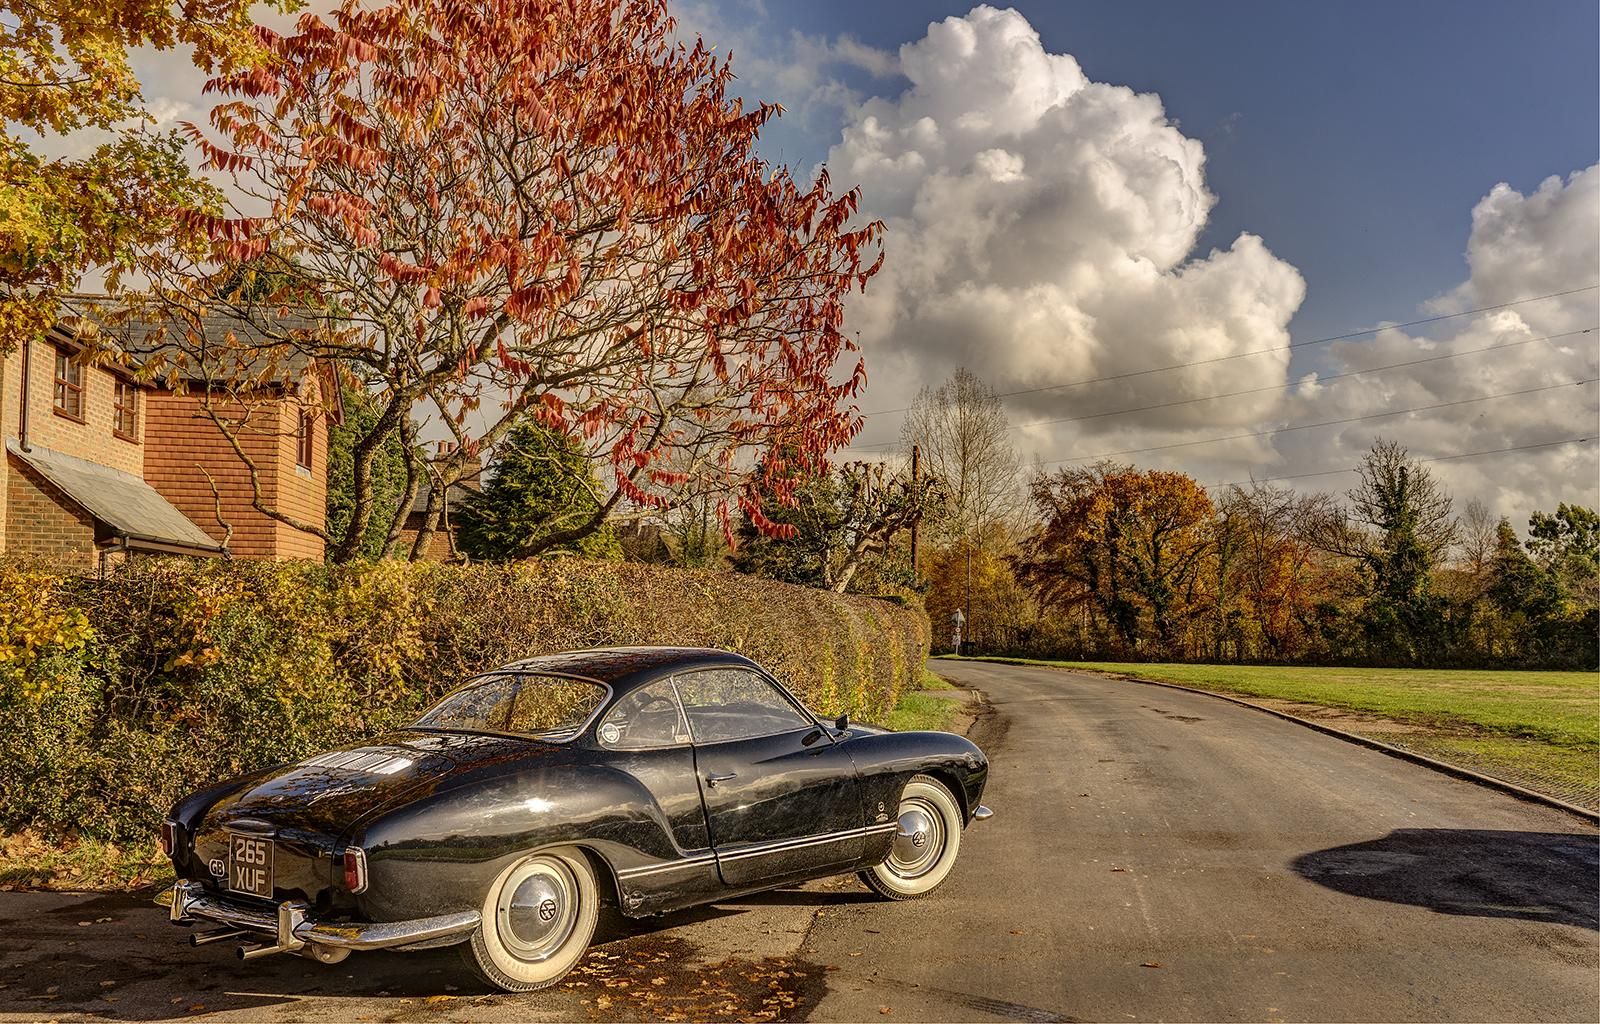 My 58 Karmann Ghia in Autumn Colours